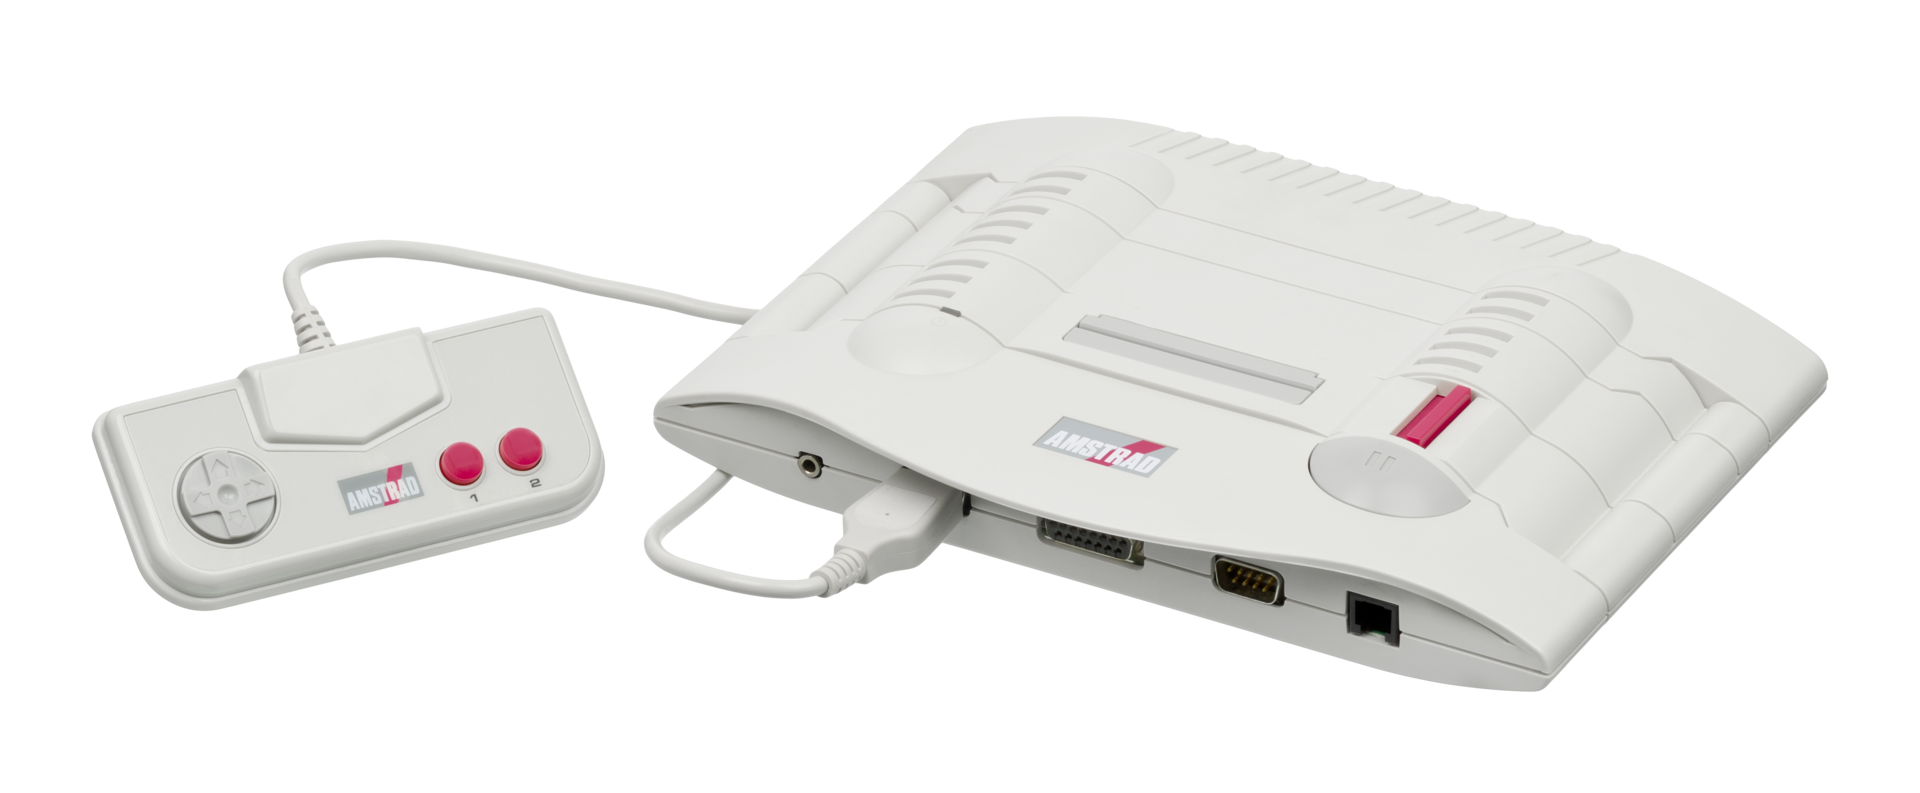 1920px-Amstrad-GX4000-Console-Set.png